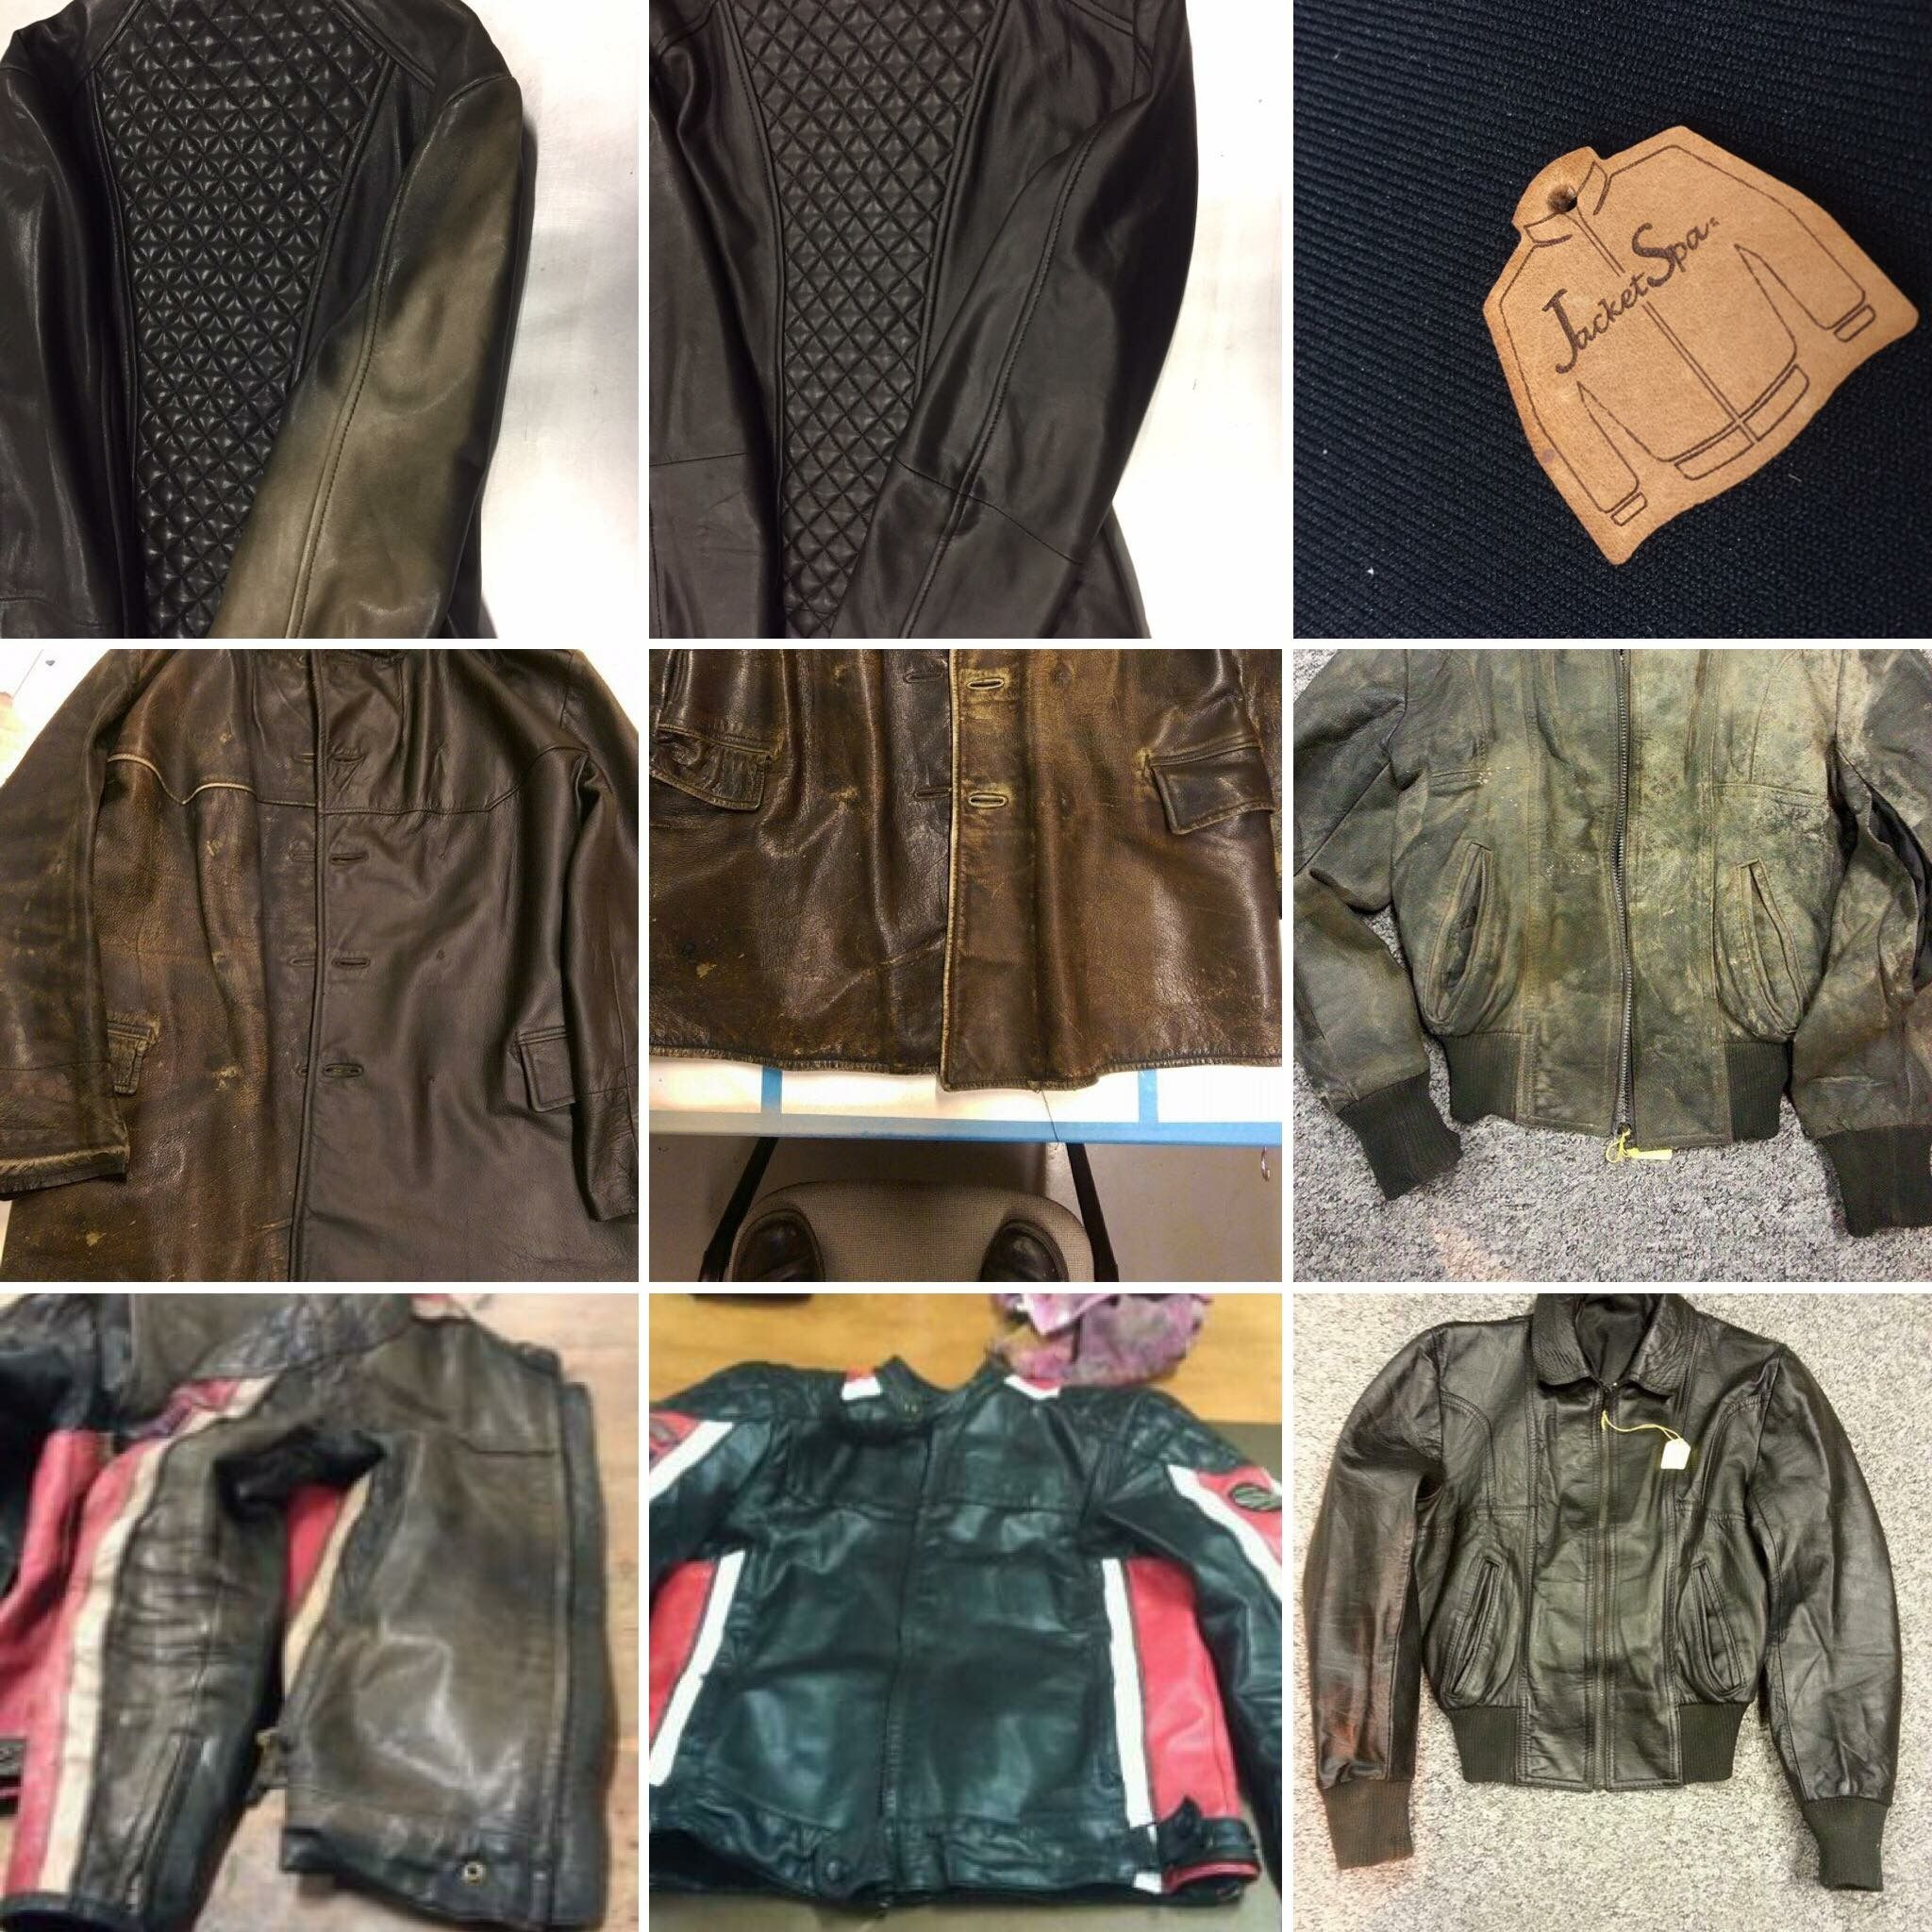 Fancy being part of the Leather Jacket franchise network